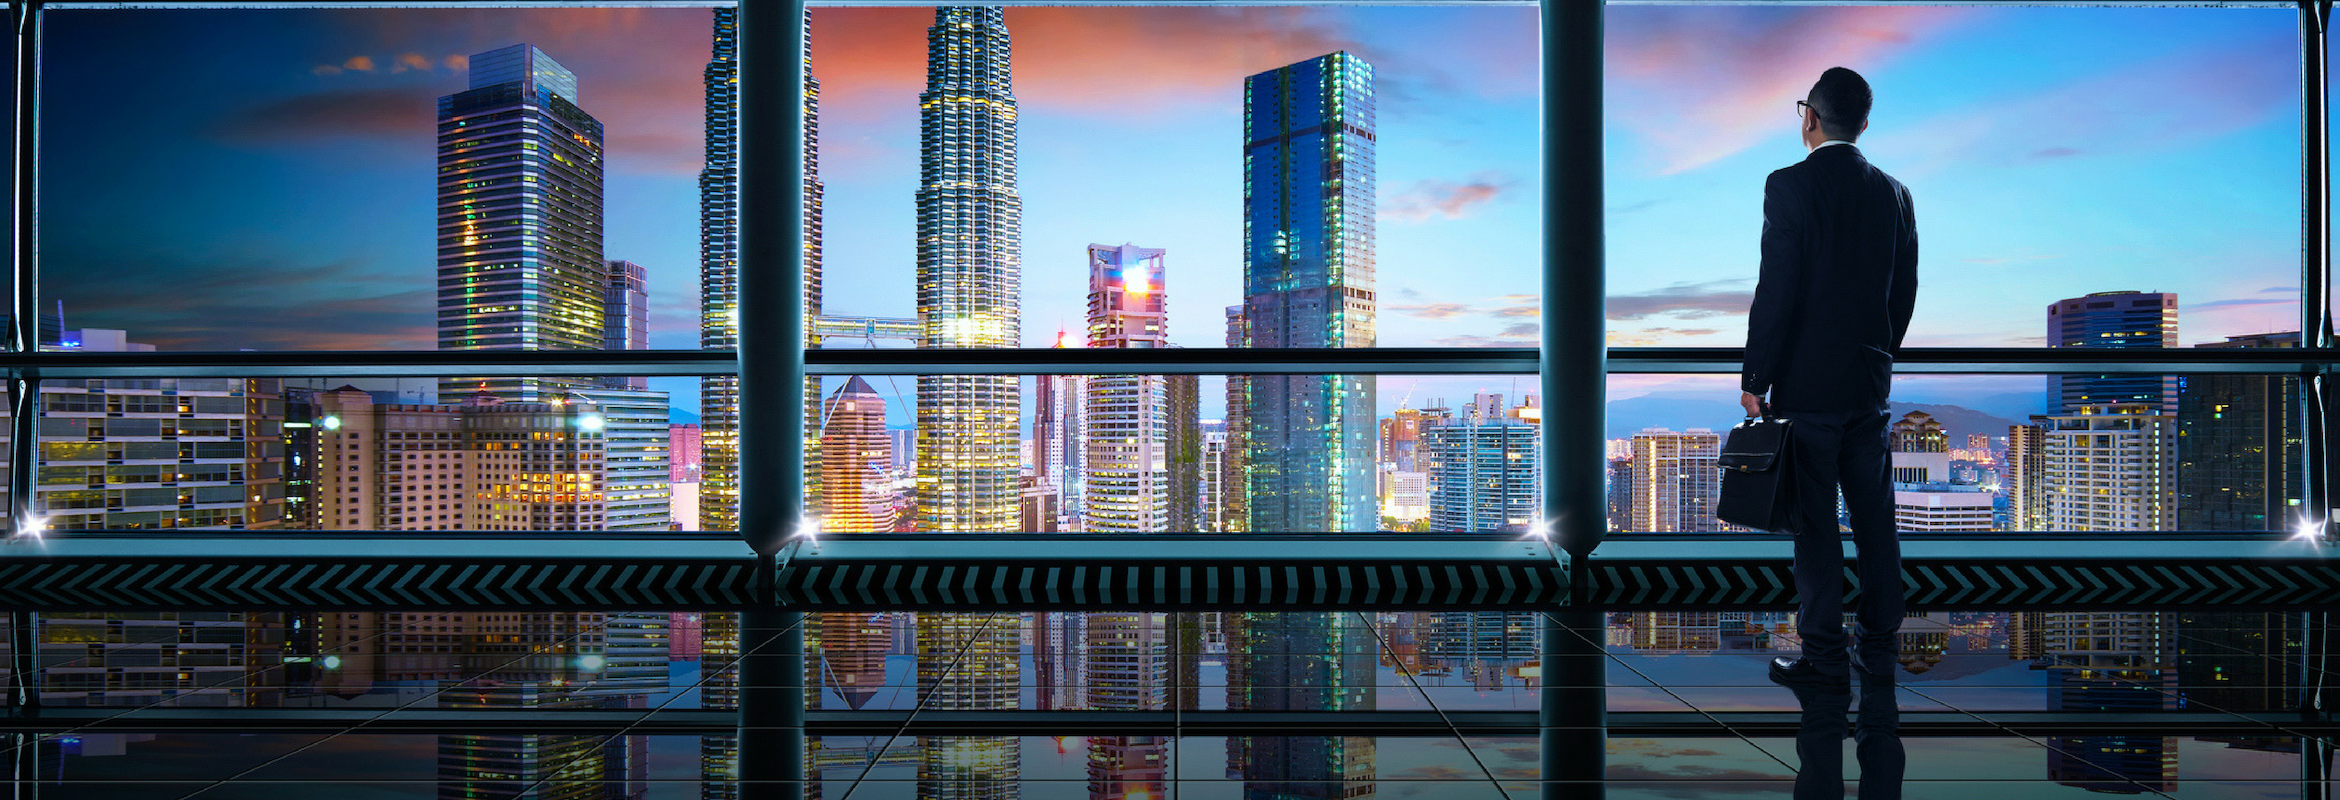 An image of a man in a high rise building look out over the city horizon.